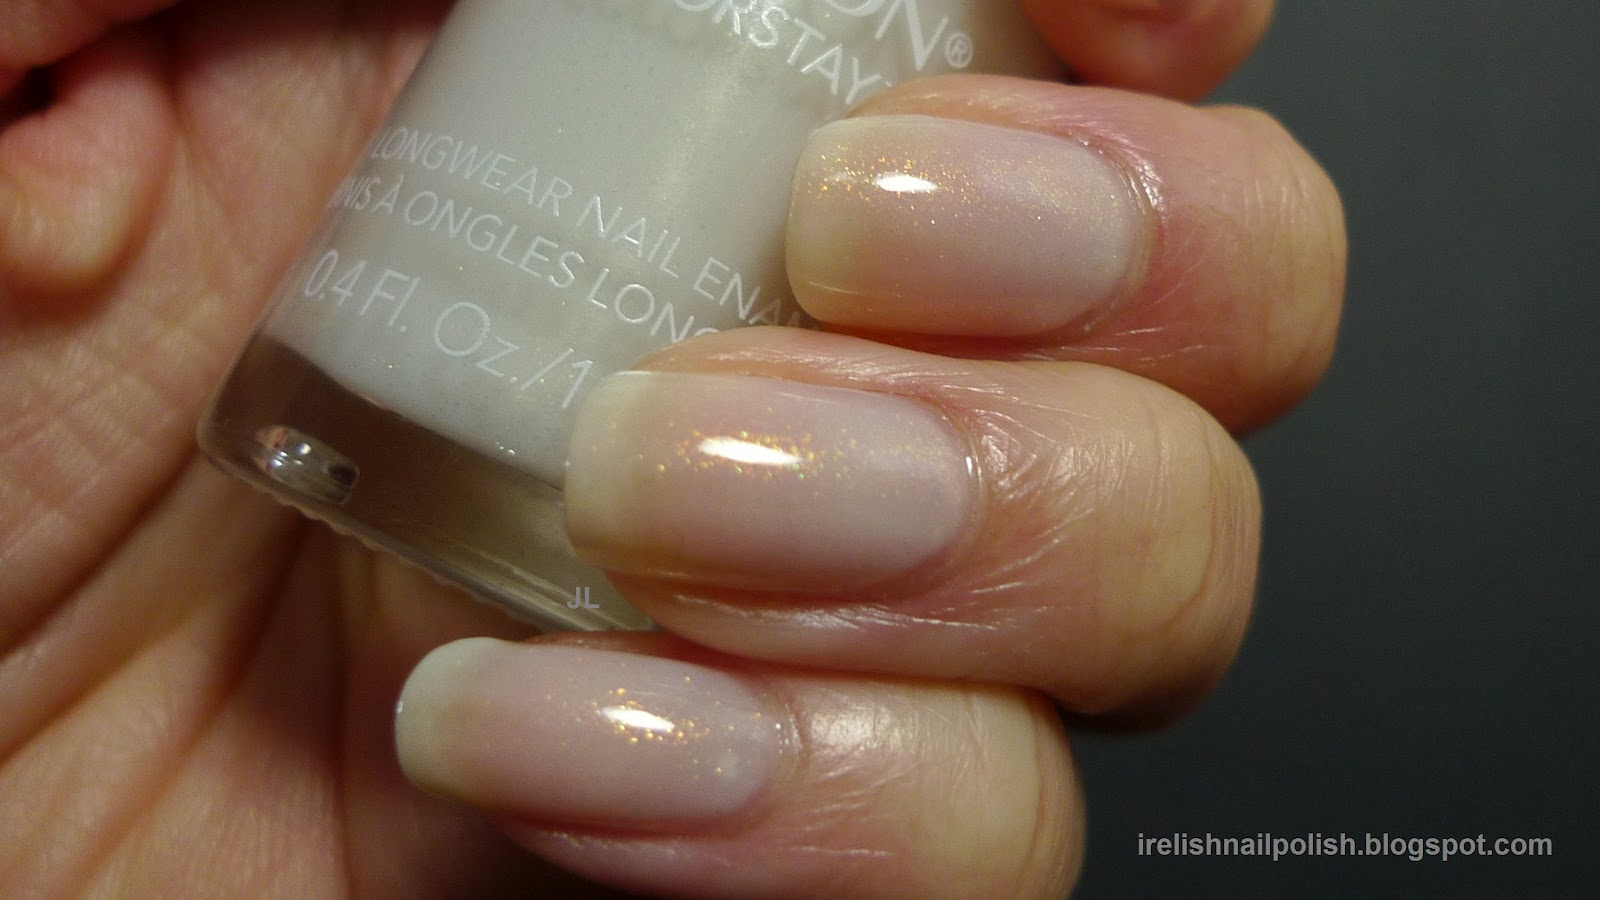 I relish nail polish revlon colorstay longwear calla lily calla lily cl is a super sheer white with a golden shimmer i layered two coats of calla lily over orlys sheer beauty plain sheer white and heres how prinsesfo Image collections